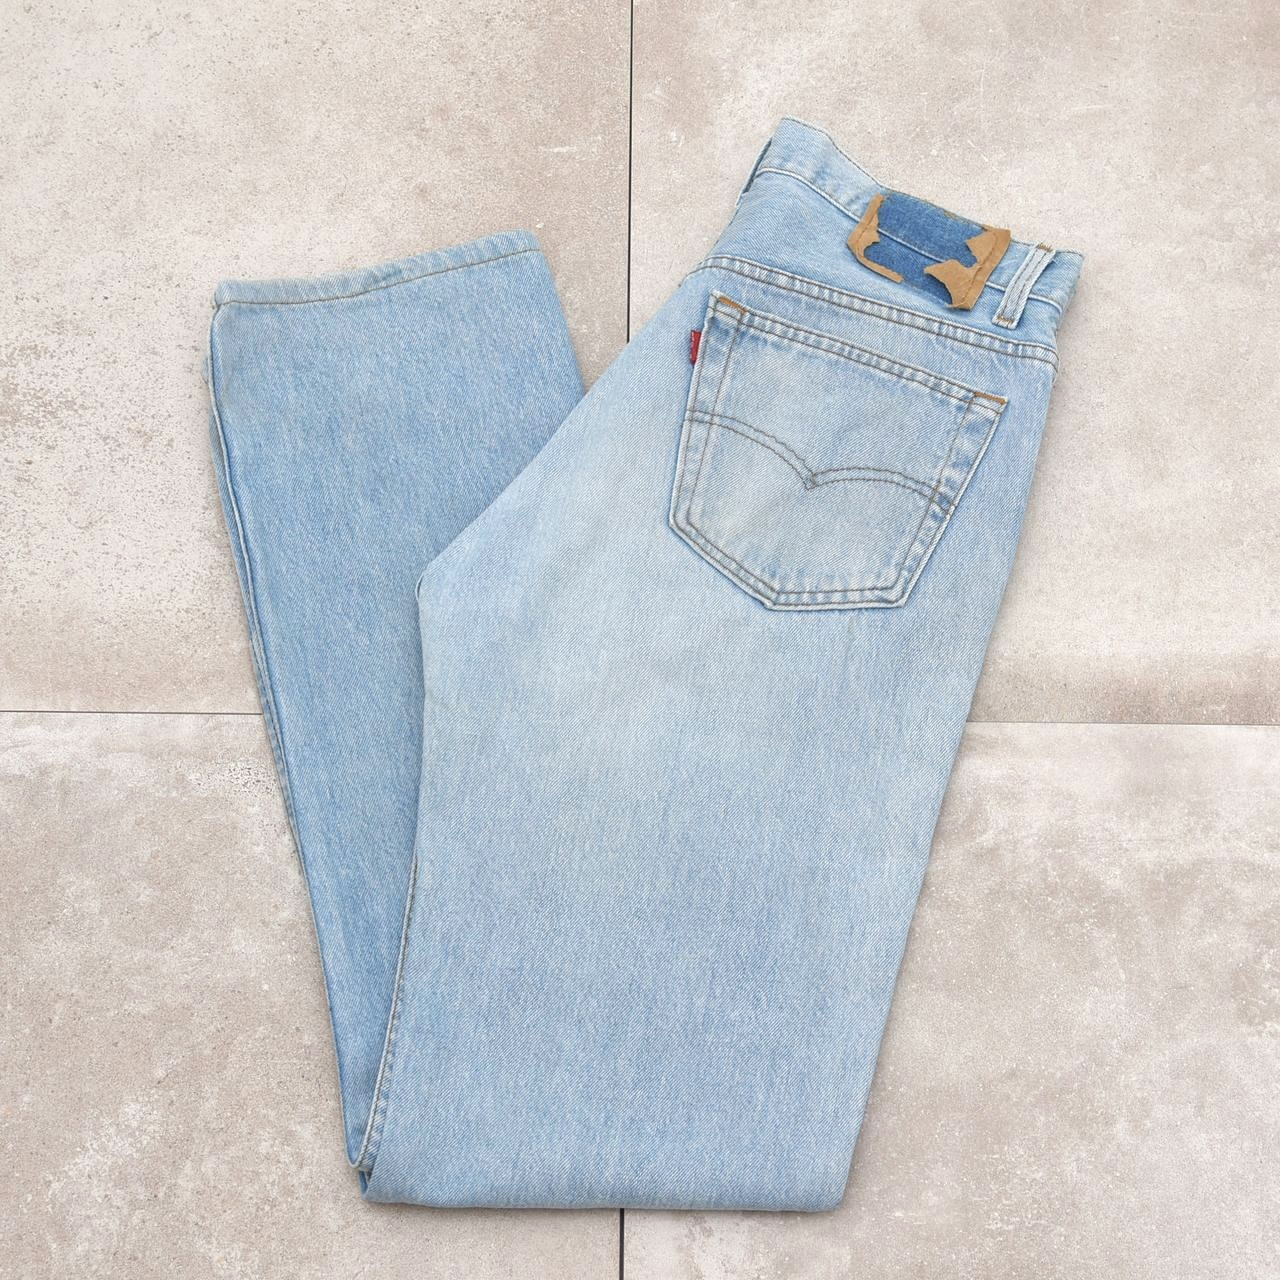 90's Levi's 501 denim pants Made in USA